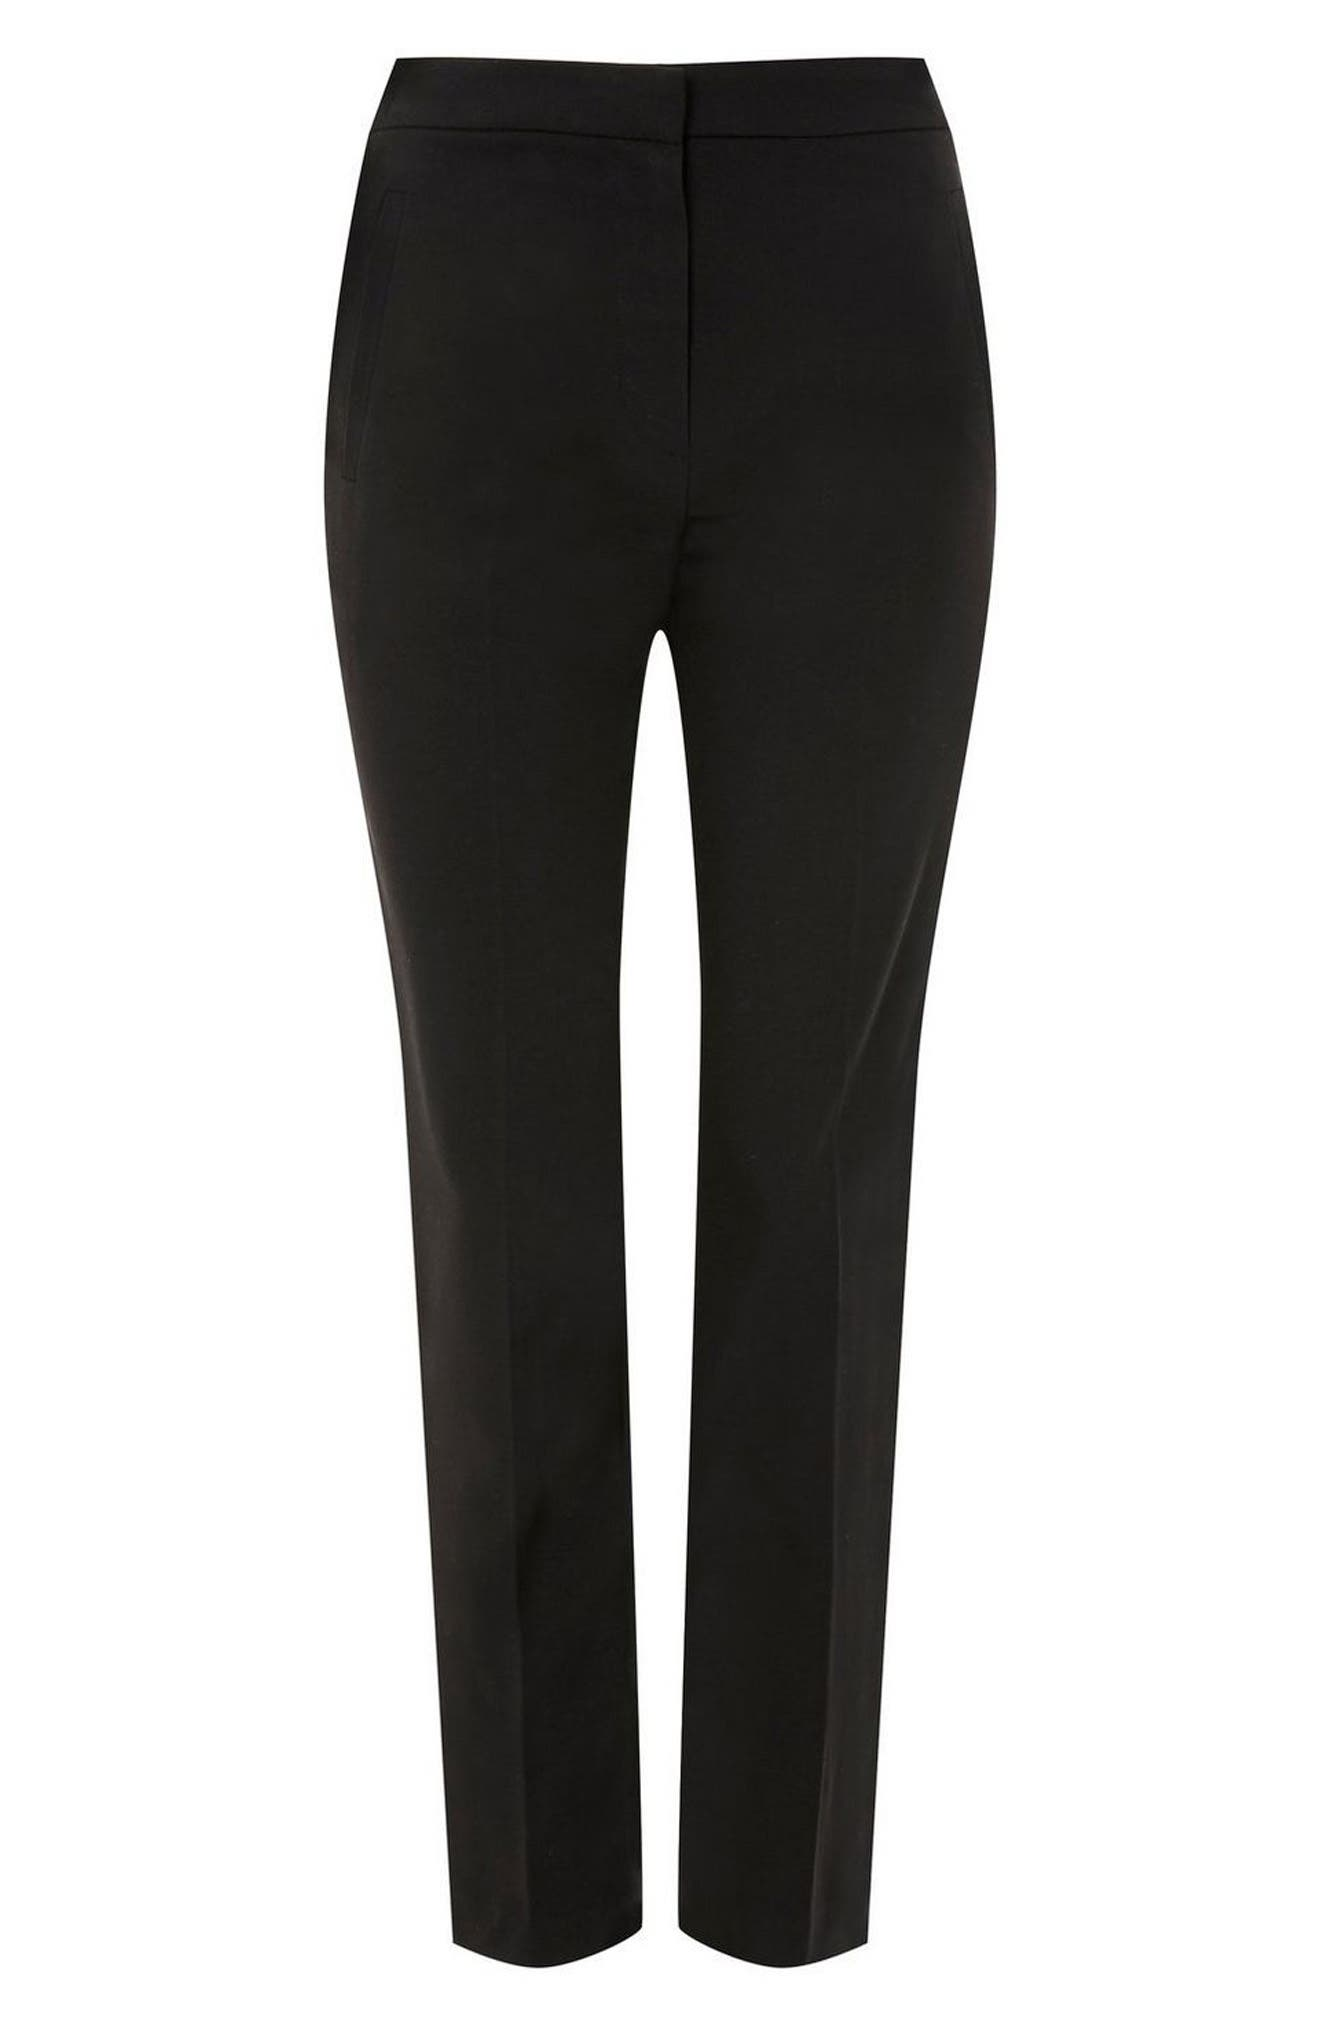 High Waist Cigarette Trousers,                             Alternate thumbnail 4, color,                             Black